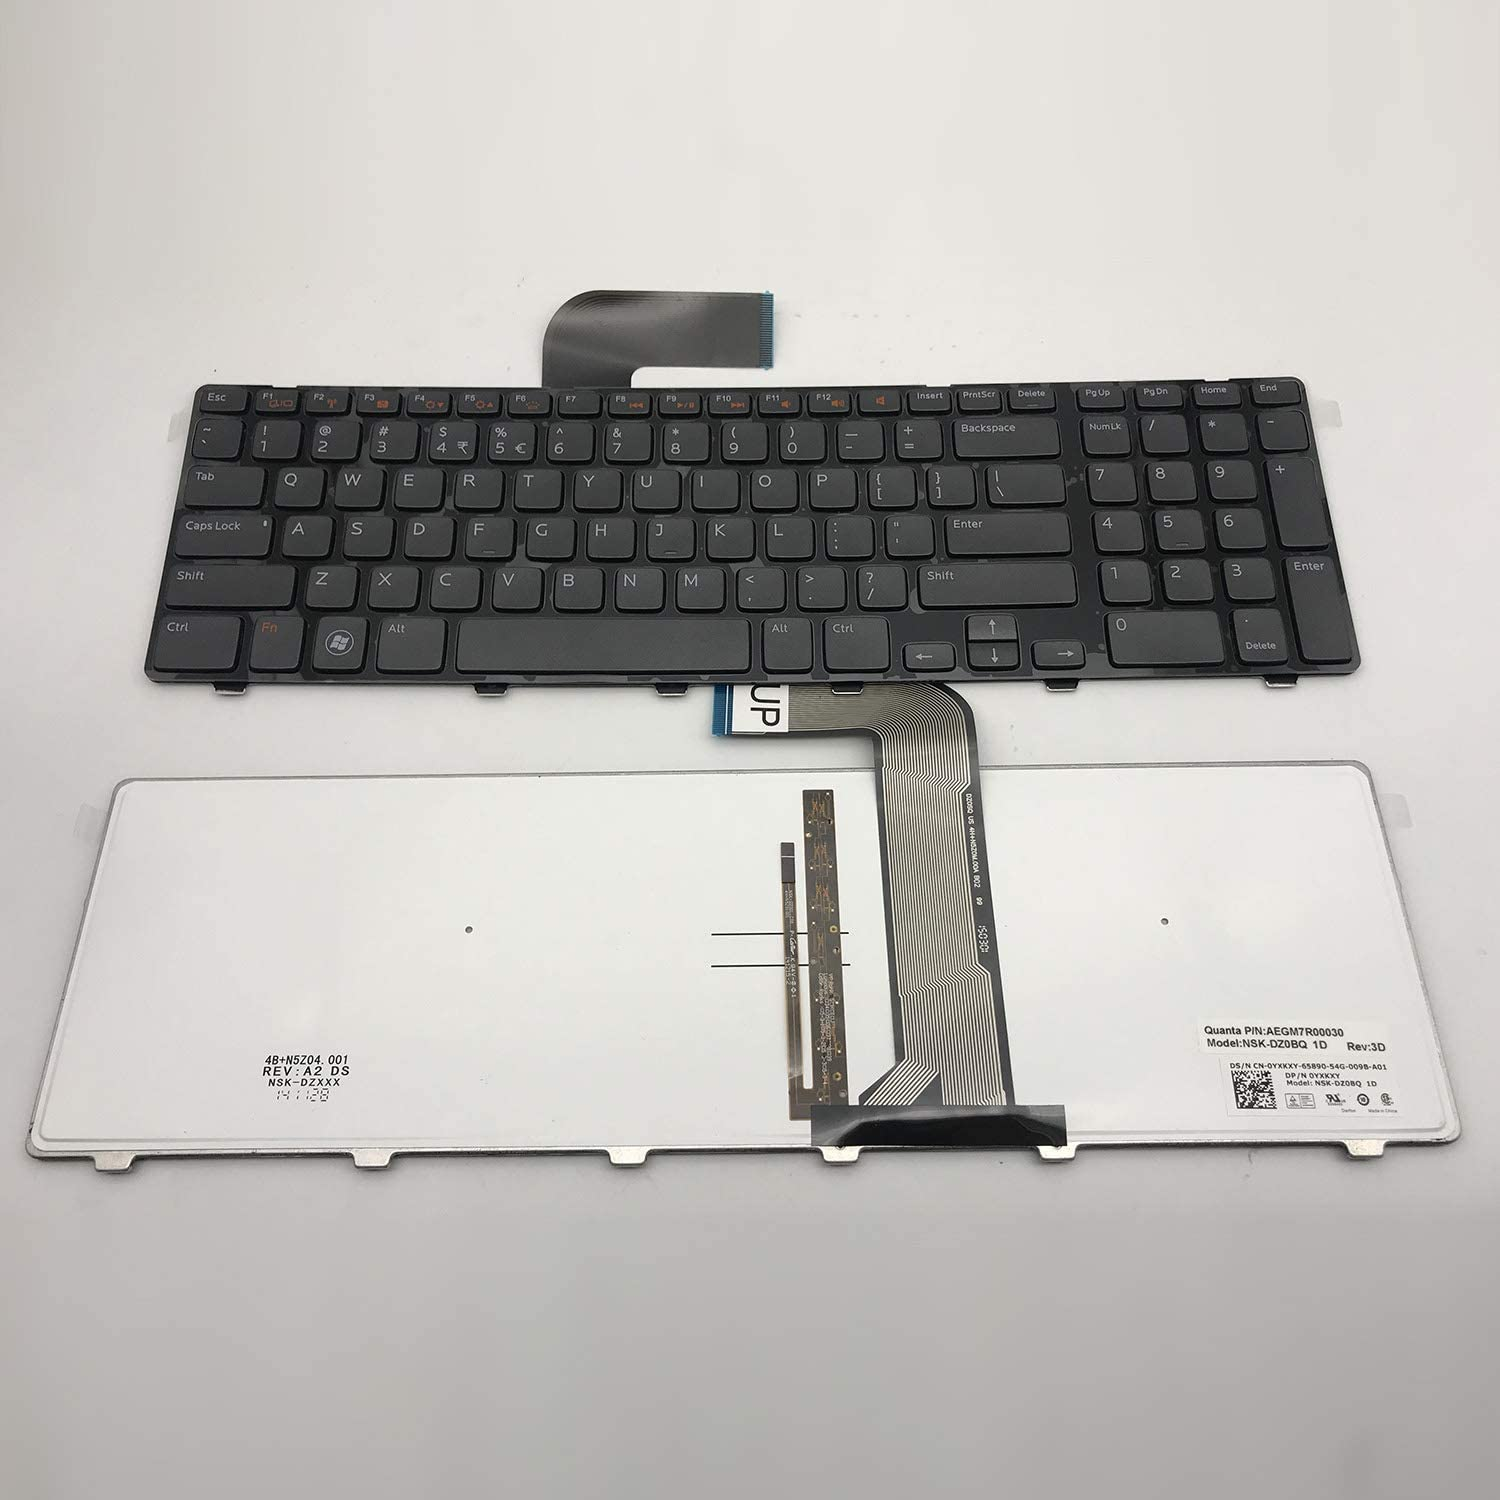 Small Enter US Layout Notebook Keyboard for Dell Inspiron 17 17R N7110 5720 7720 Vostro 3750 XPS L702X Series Black, with Frame, with Backlight, N7110